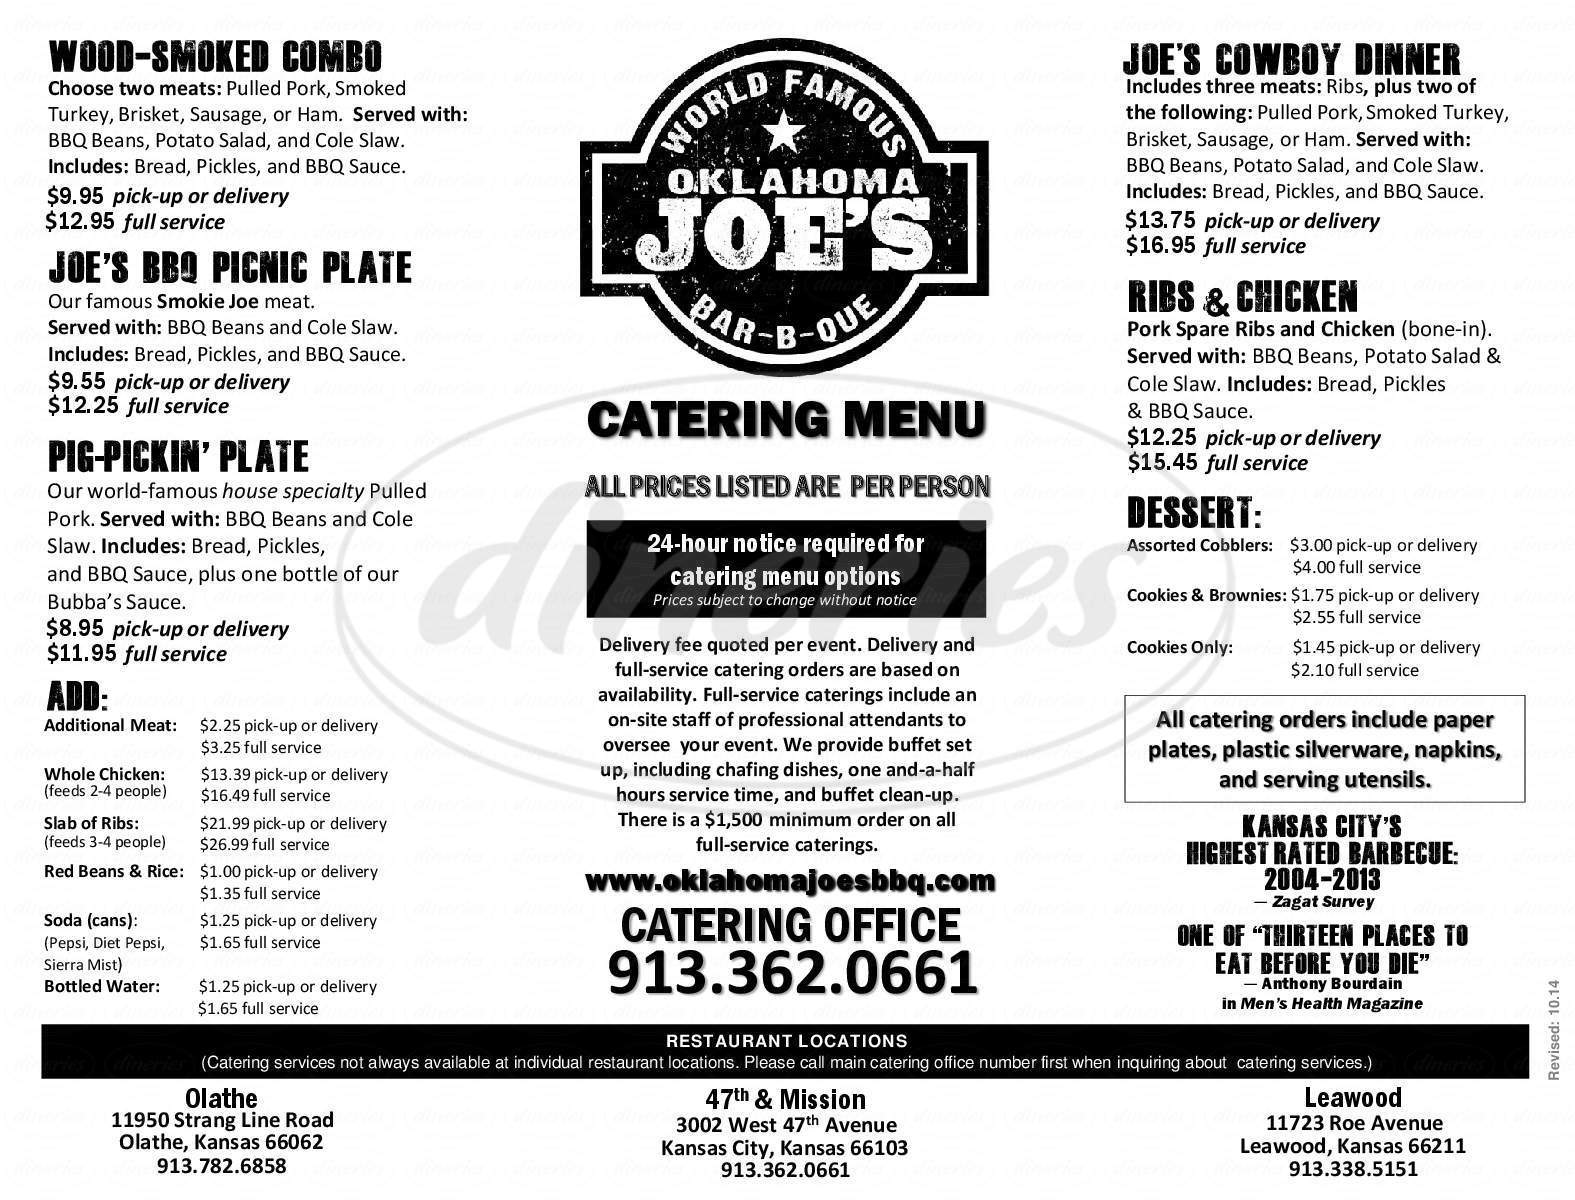 menu for Oklahoma Joe's BBQ